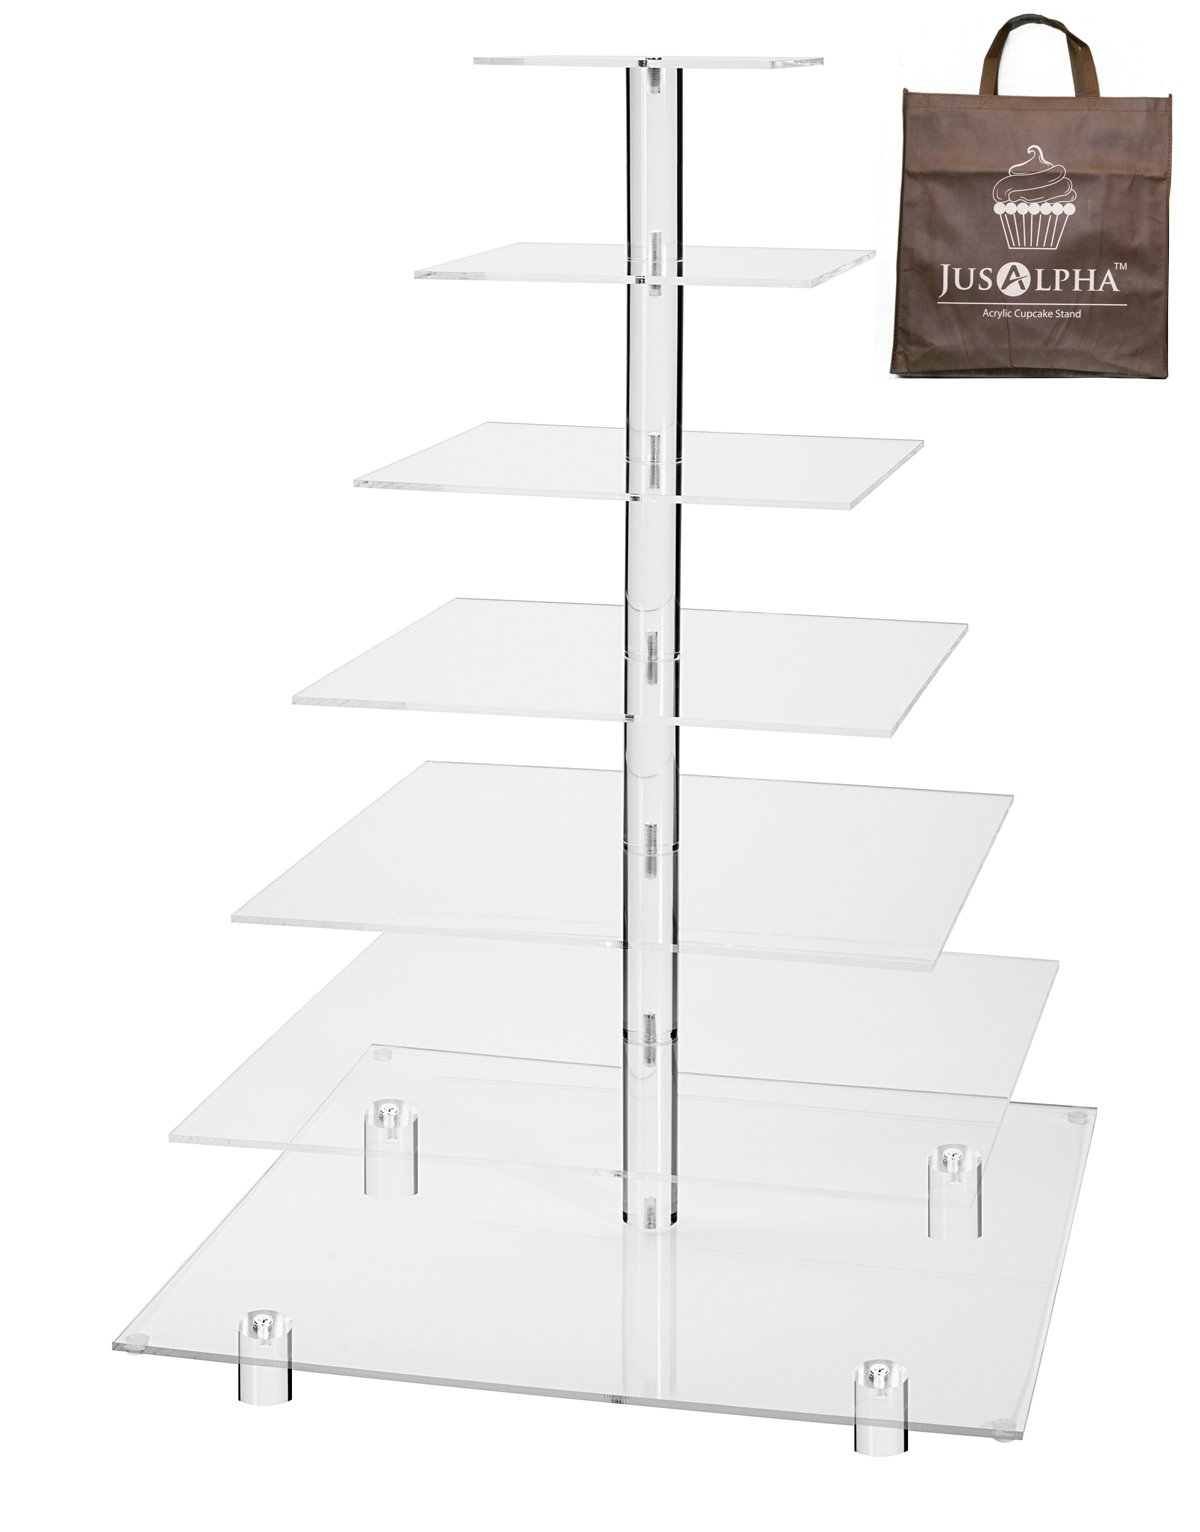 Large 7 Tier Wedding Party Acrylic Glass Cupcake Stand-Cake and Dessert Tower With Rod Feet (7SF) by Jusalpha